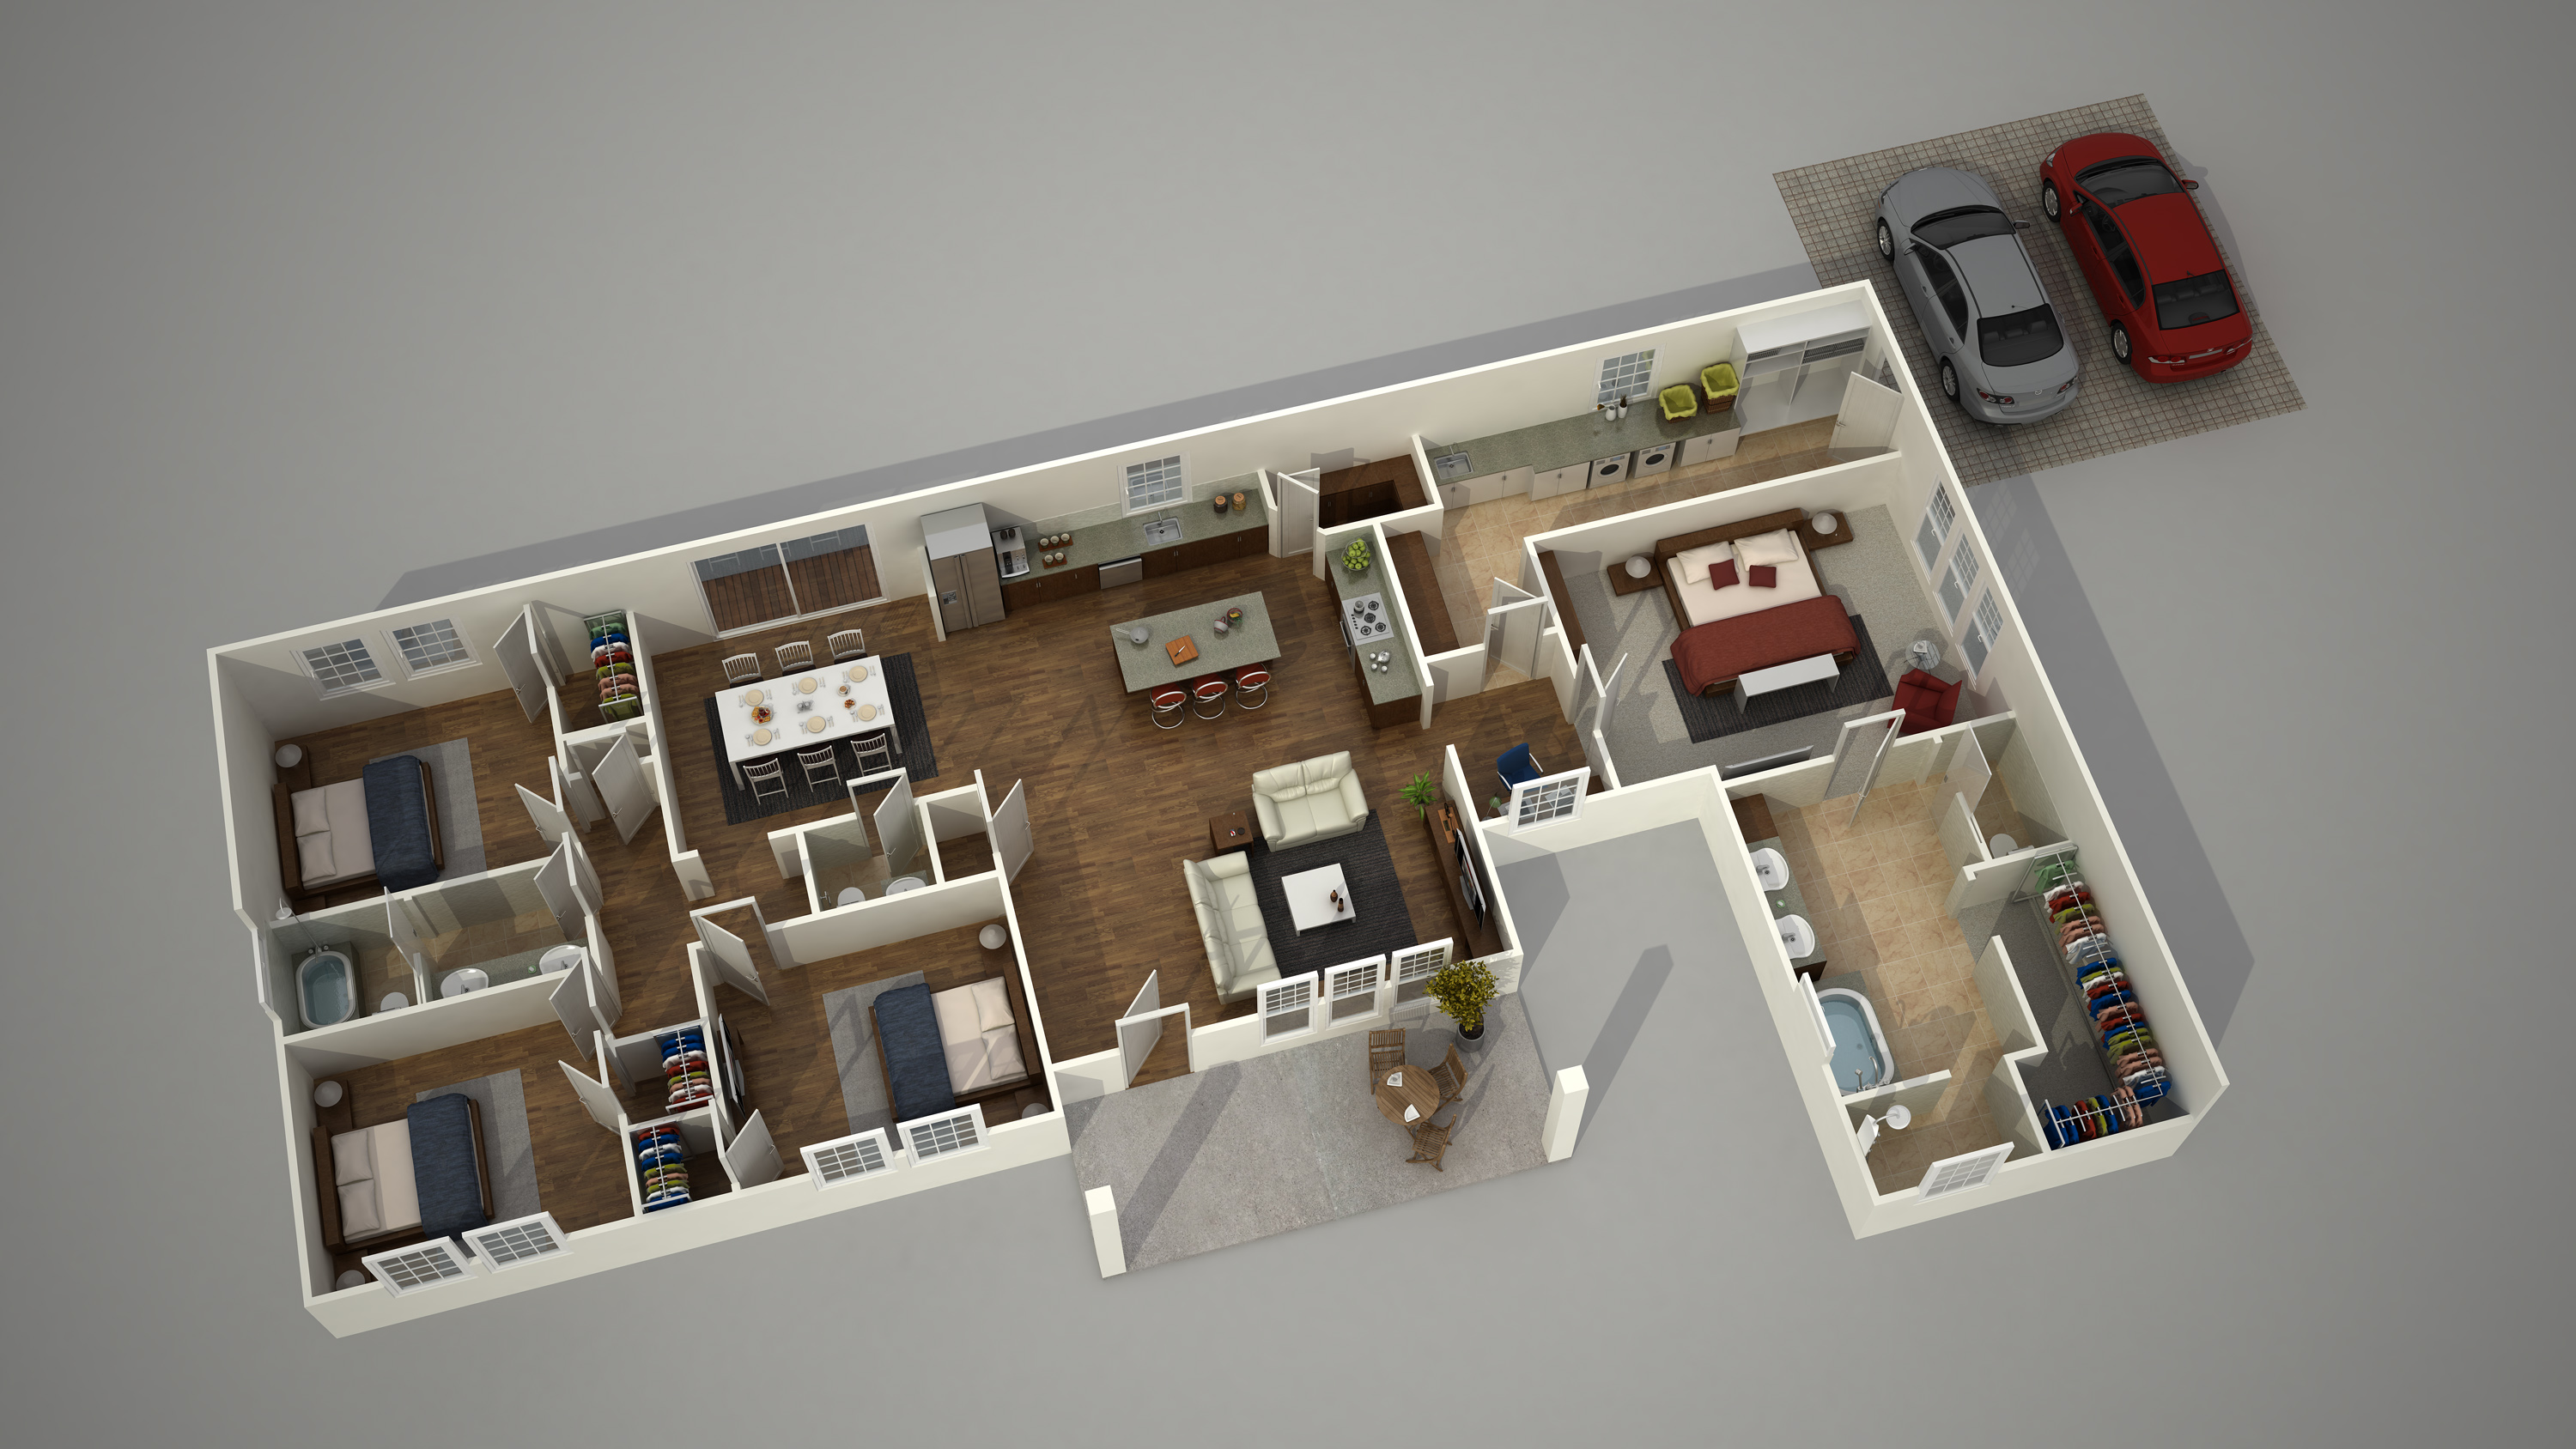 Grundriss Erstellen How To Create A 3d Architecture Floor Plan Rendering